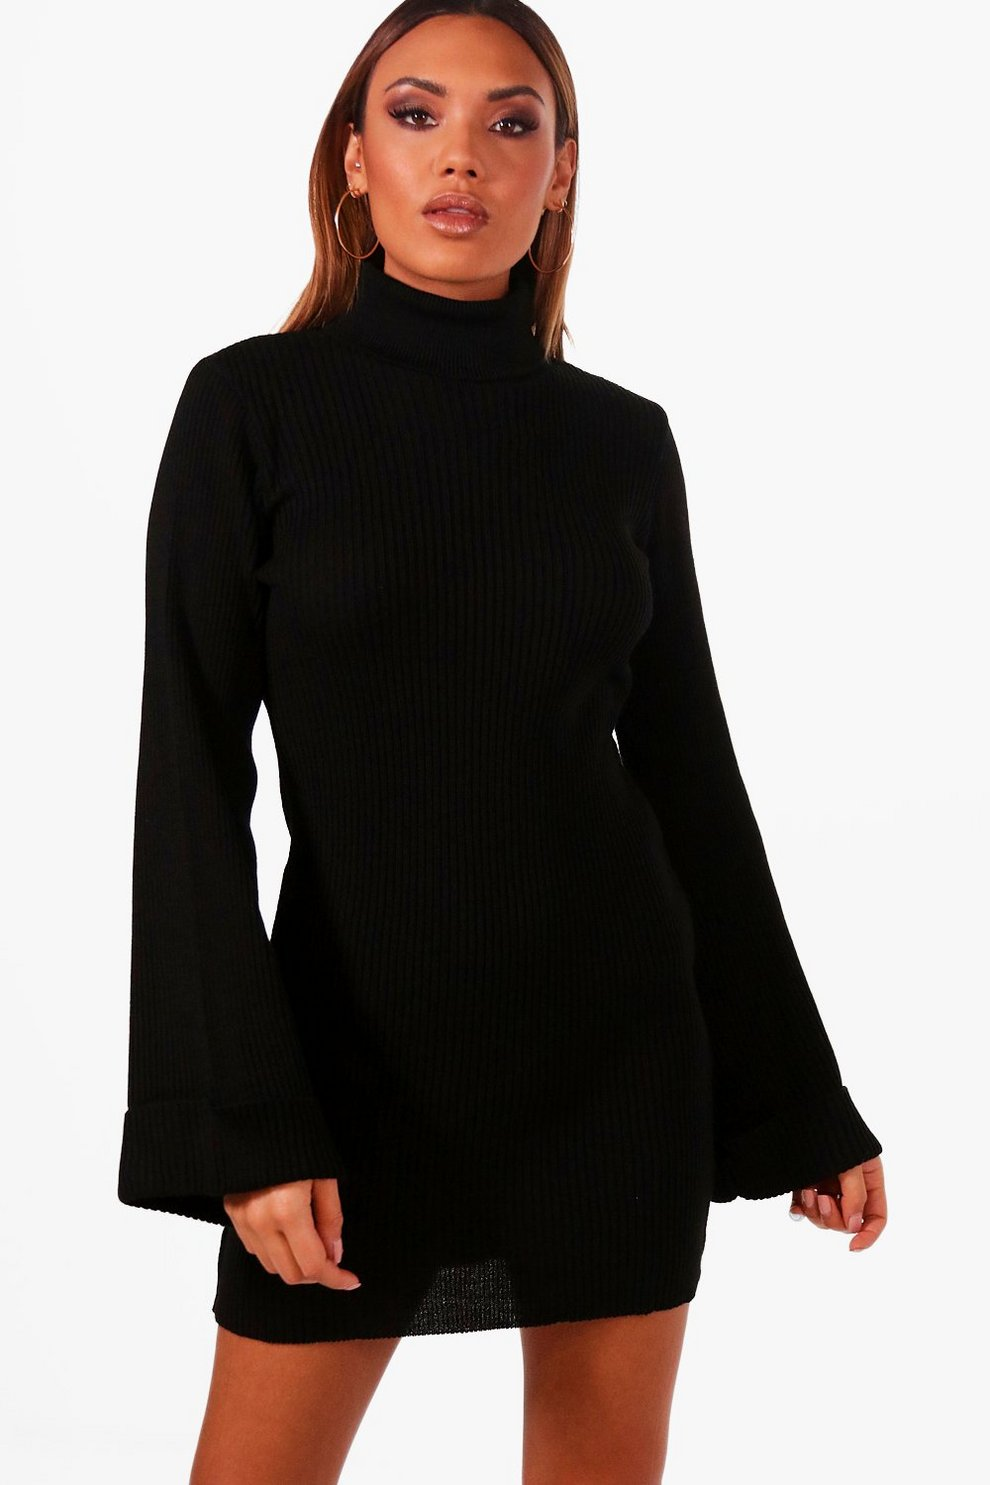 3dff9239622 Robe pull à col roulé manches larges